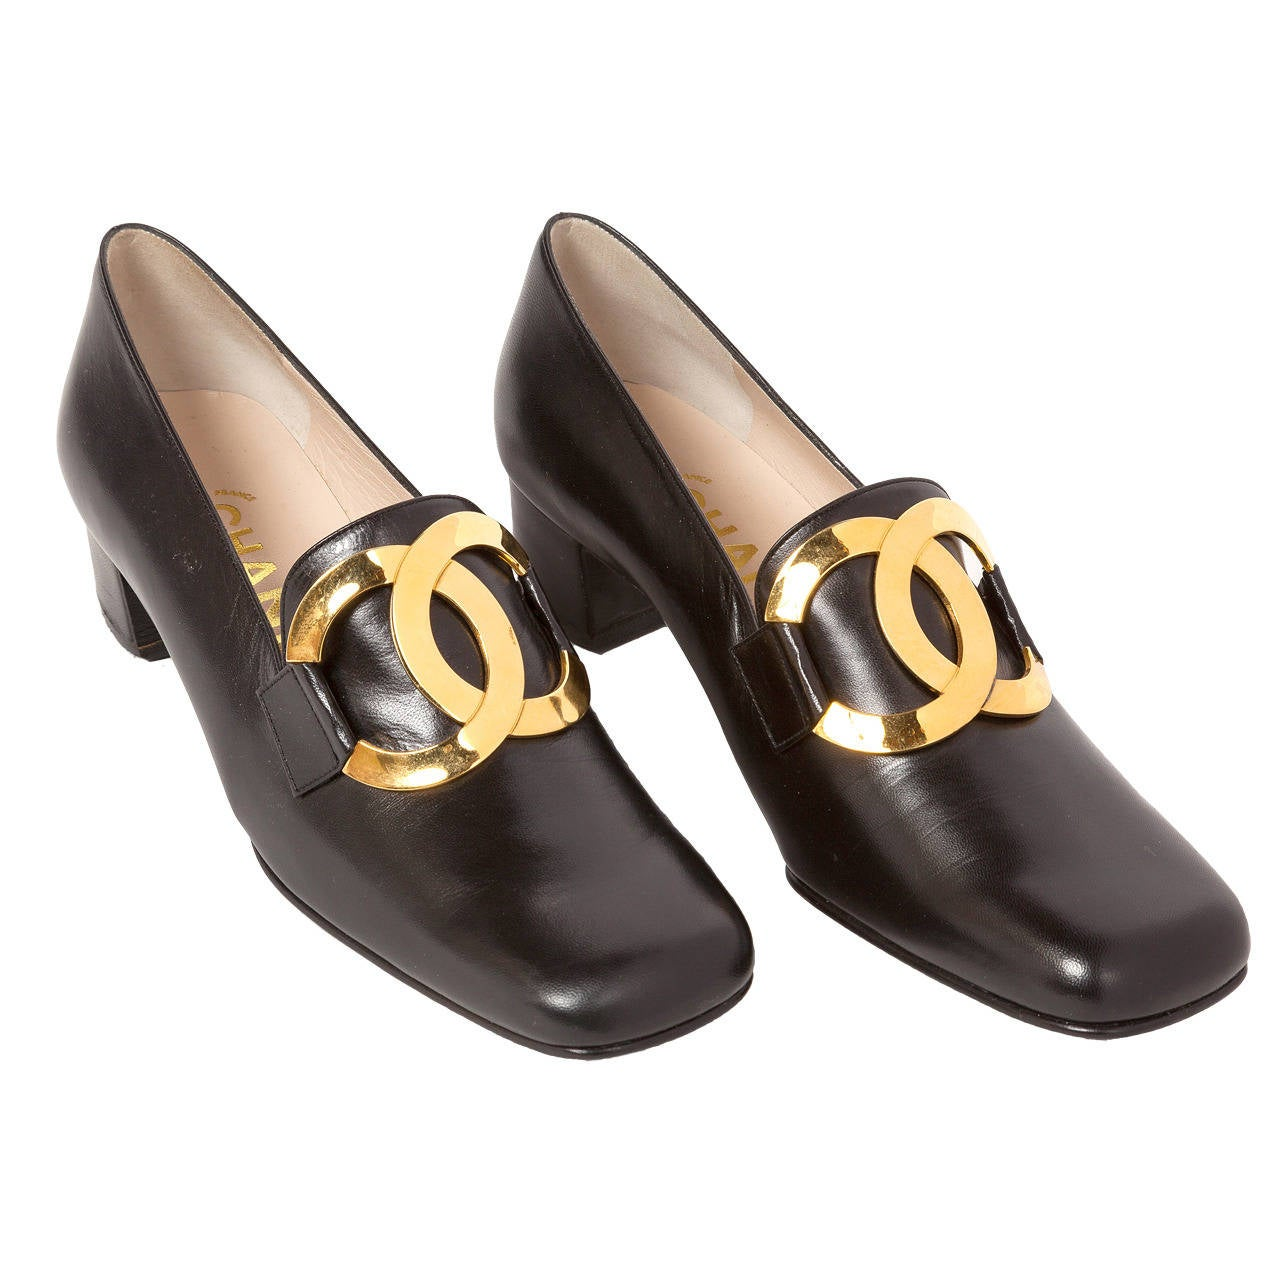 1996 Nib Chanel Black Leather Loafers Shoes W Gold Metal